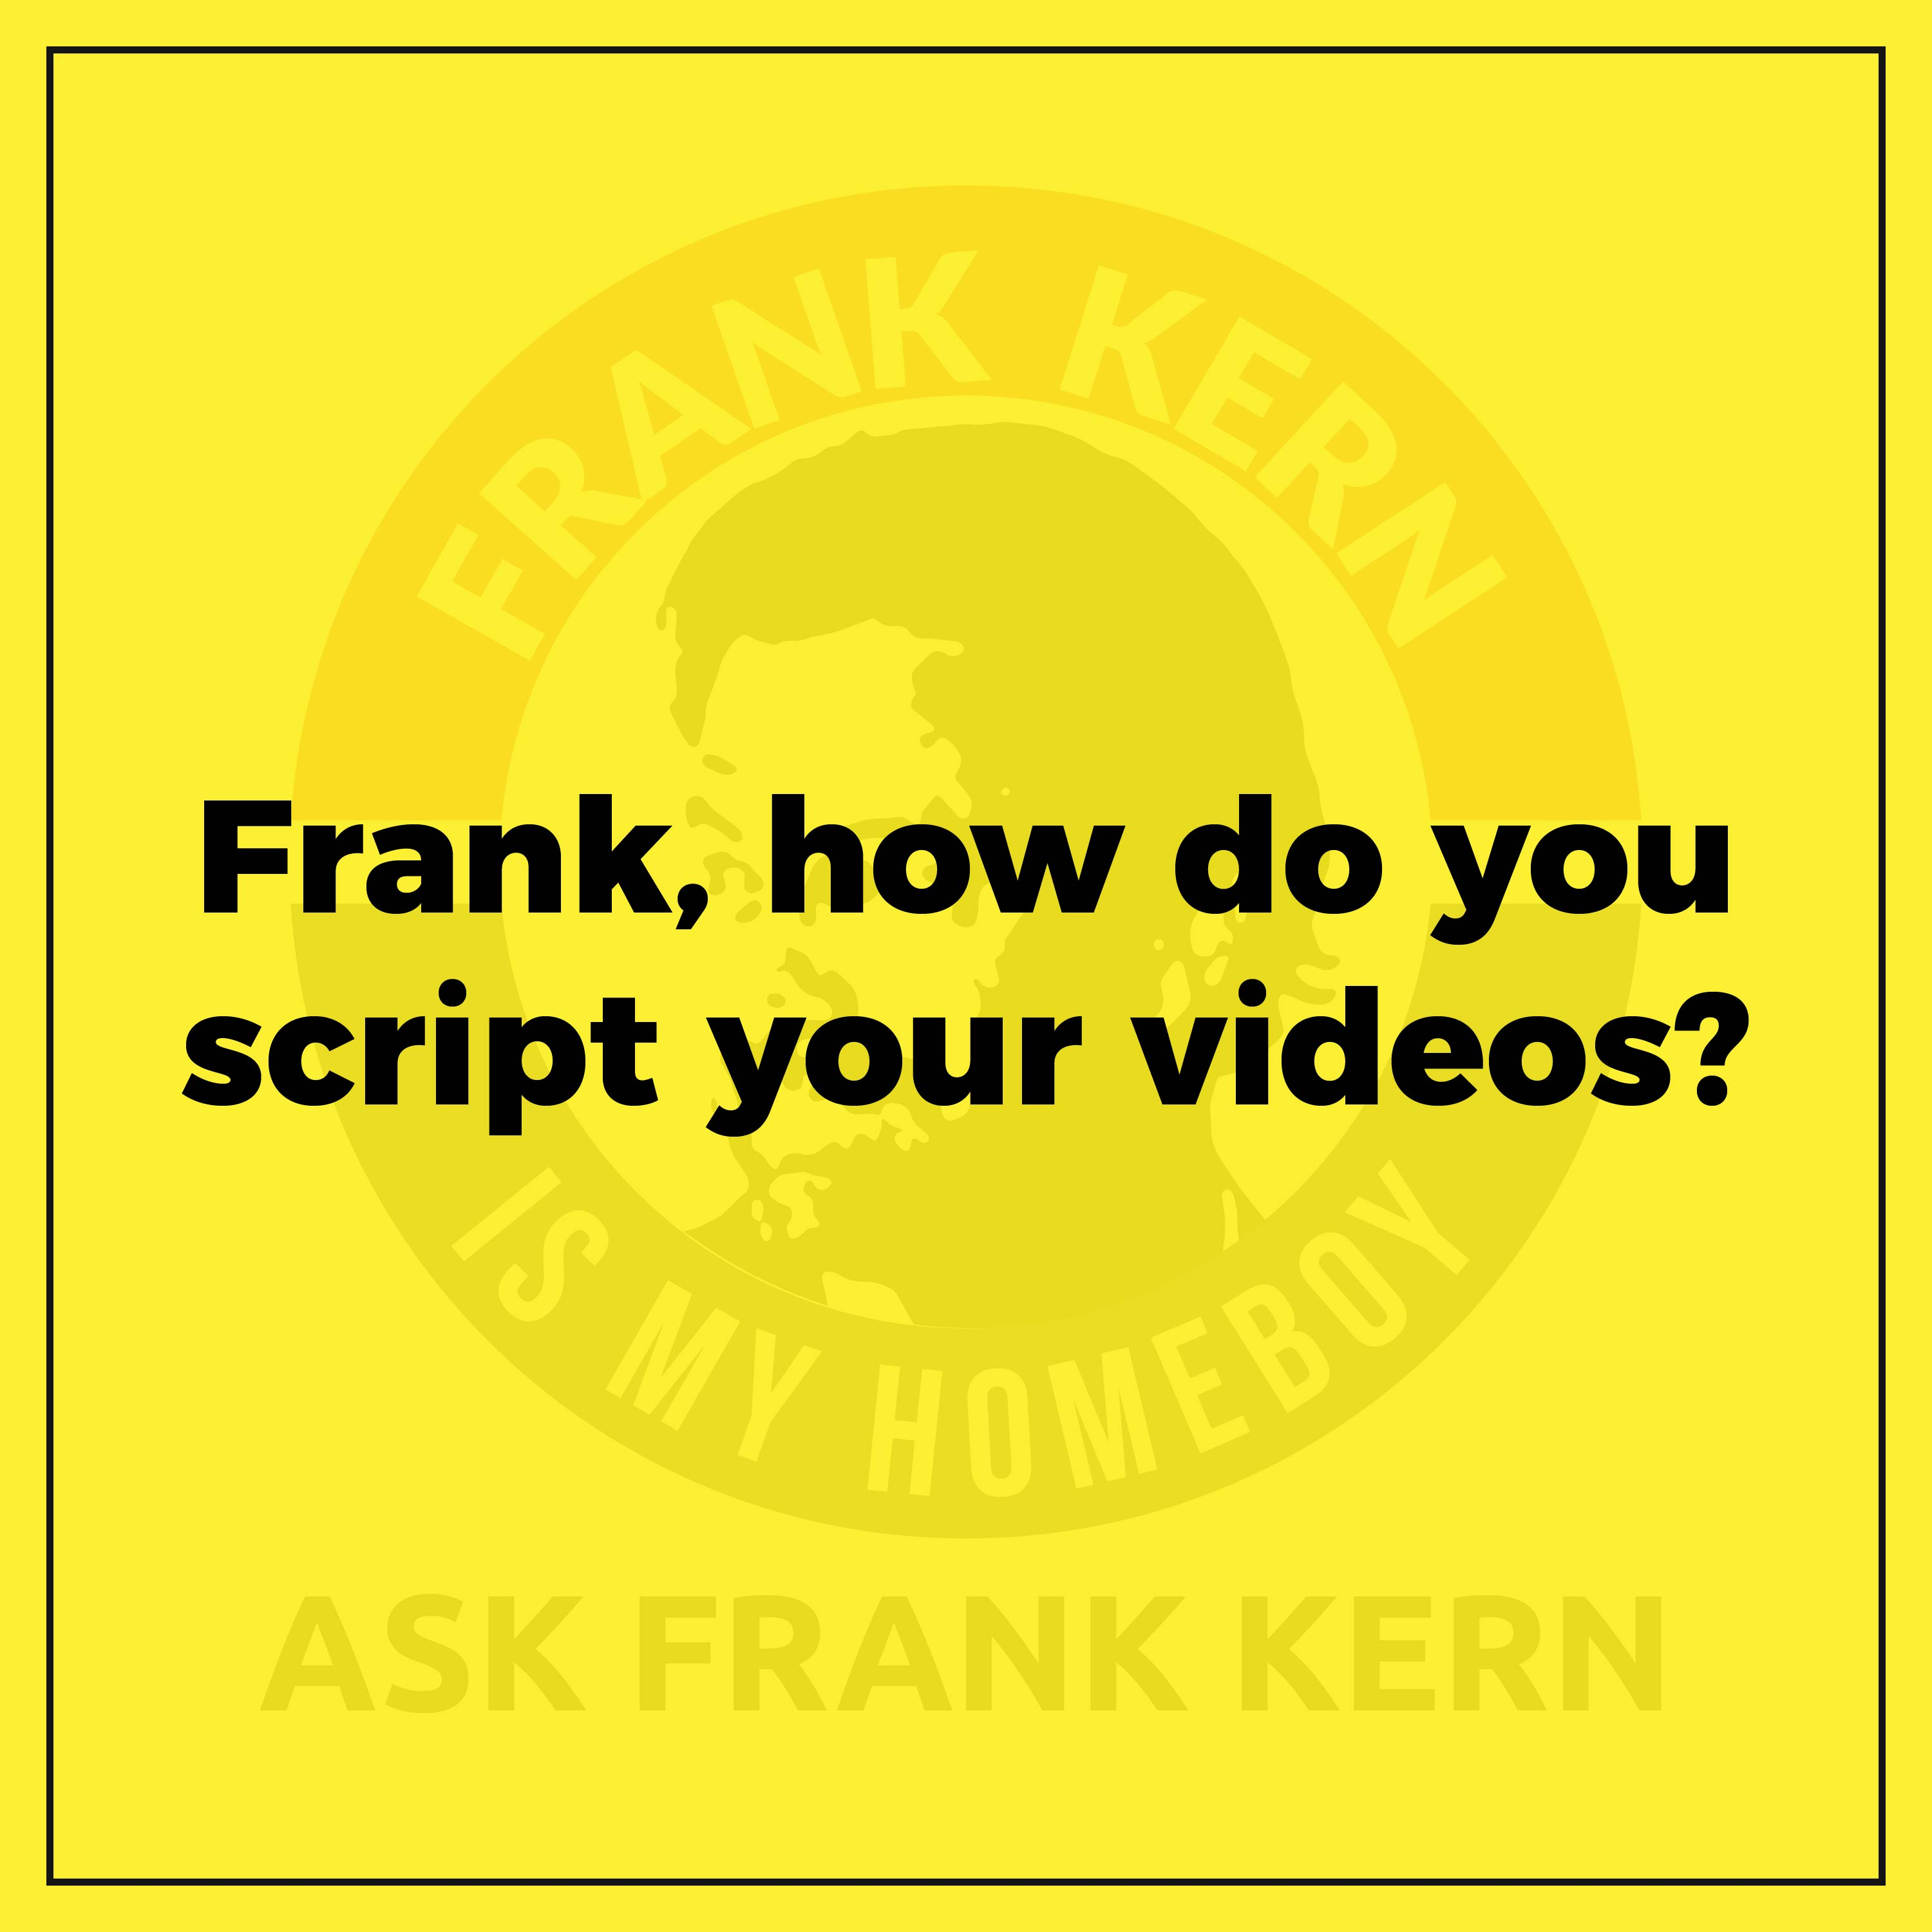 Frank, how do you script your videos?